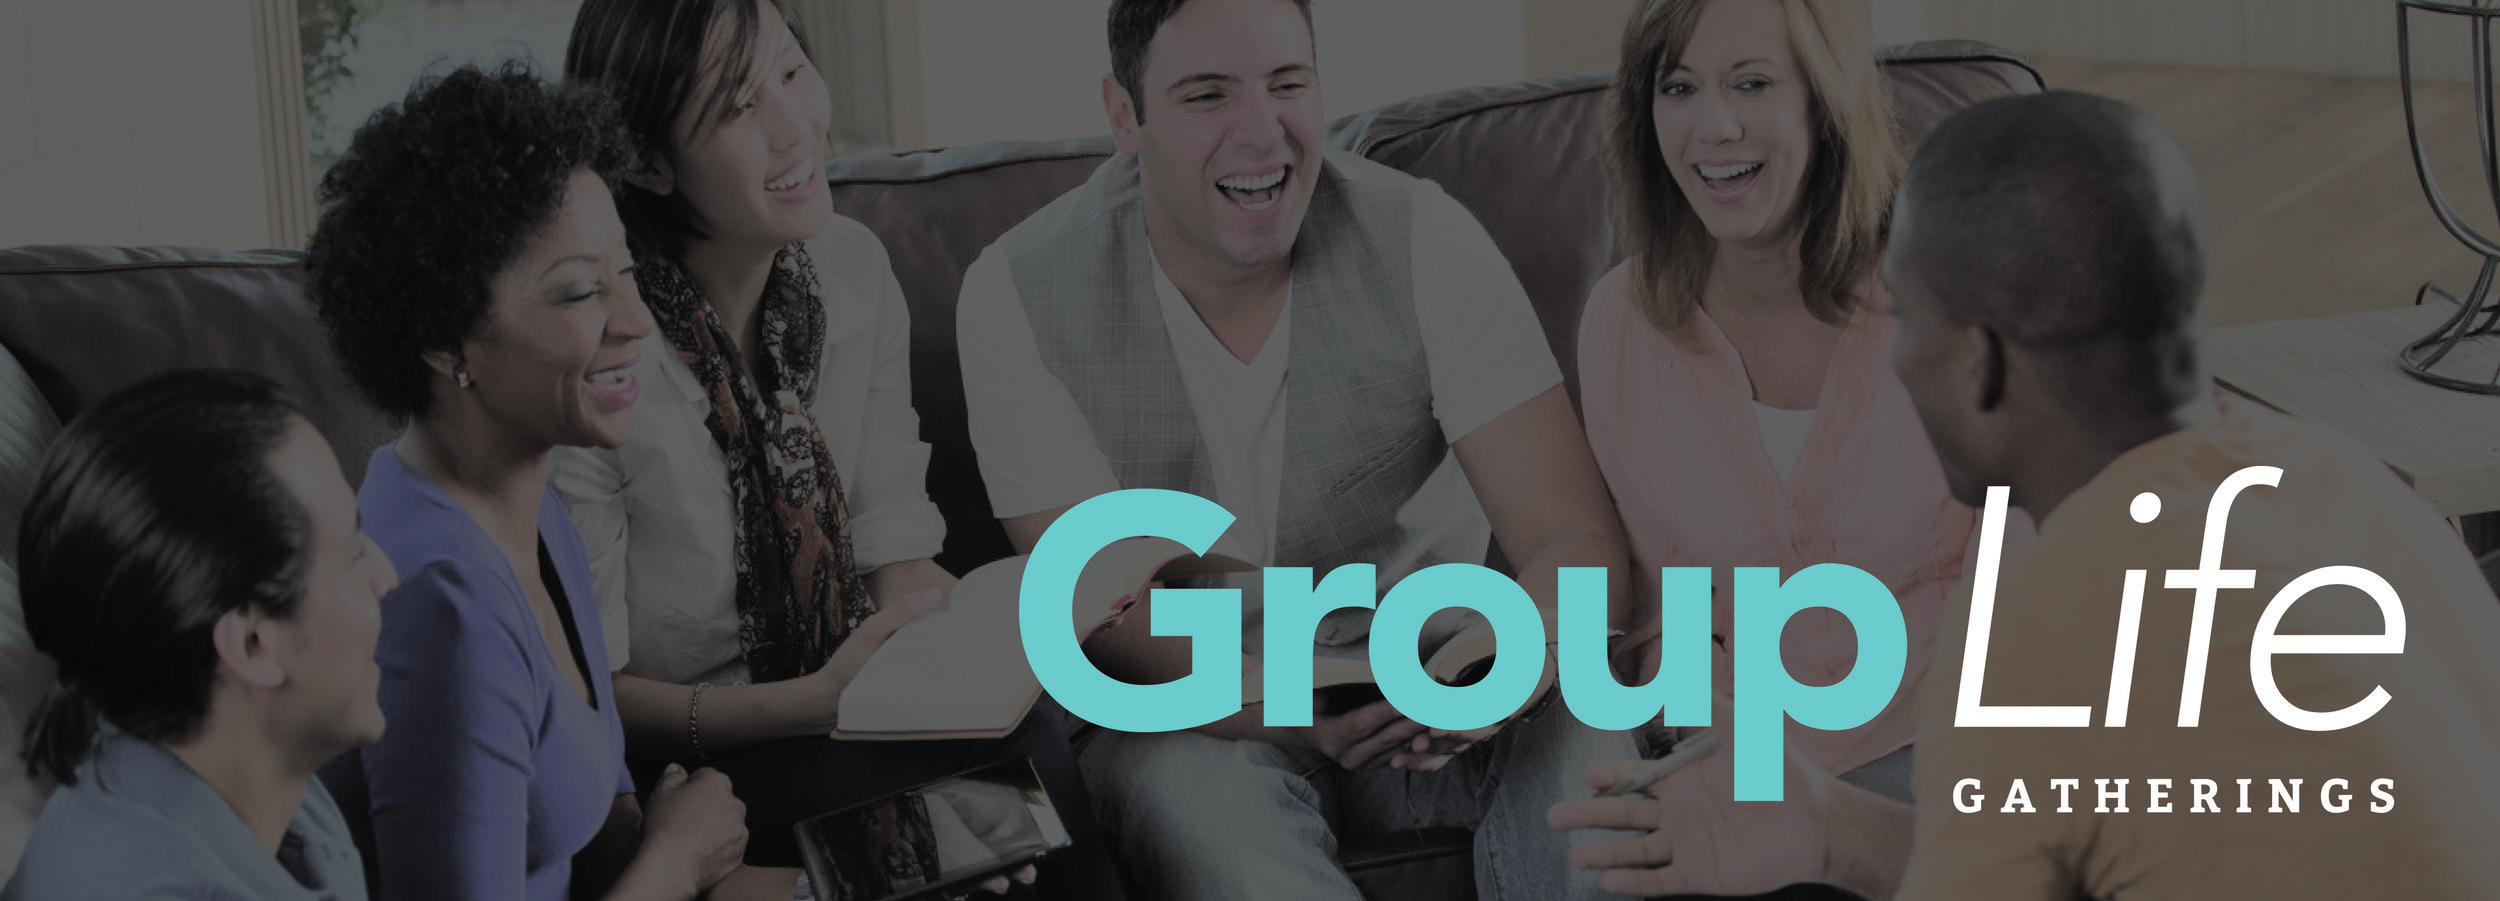 GroupLife_Banner.jpg